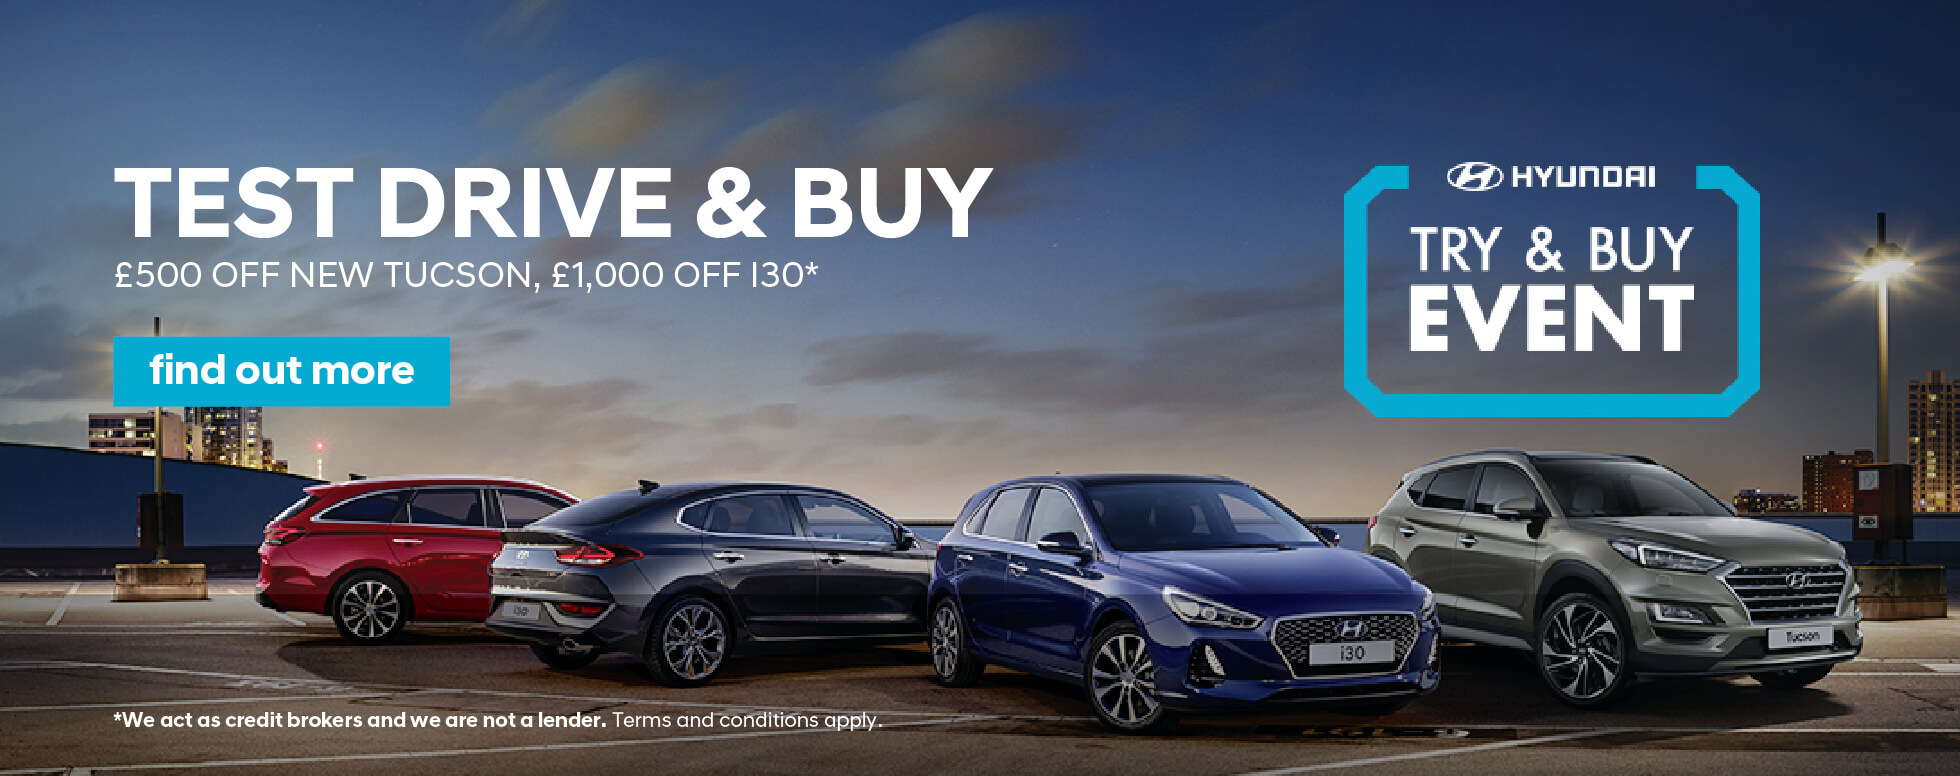 Hyundai Try and Buy Event BB